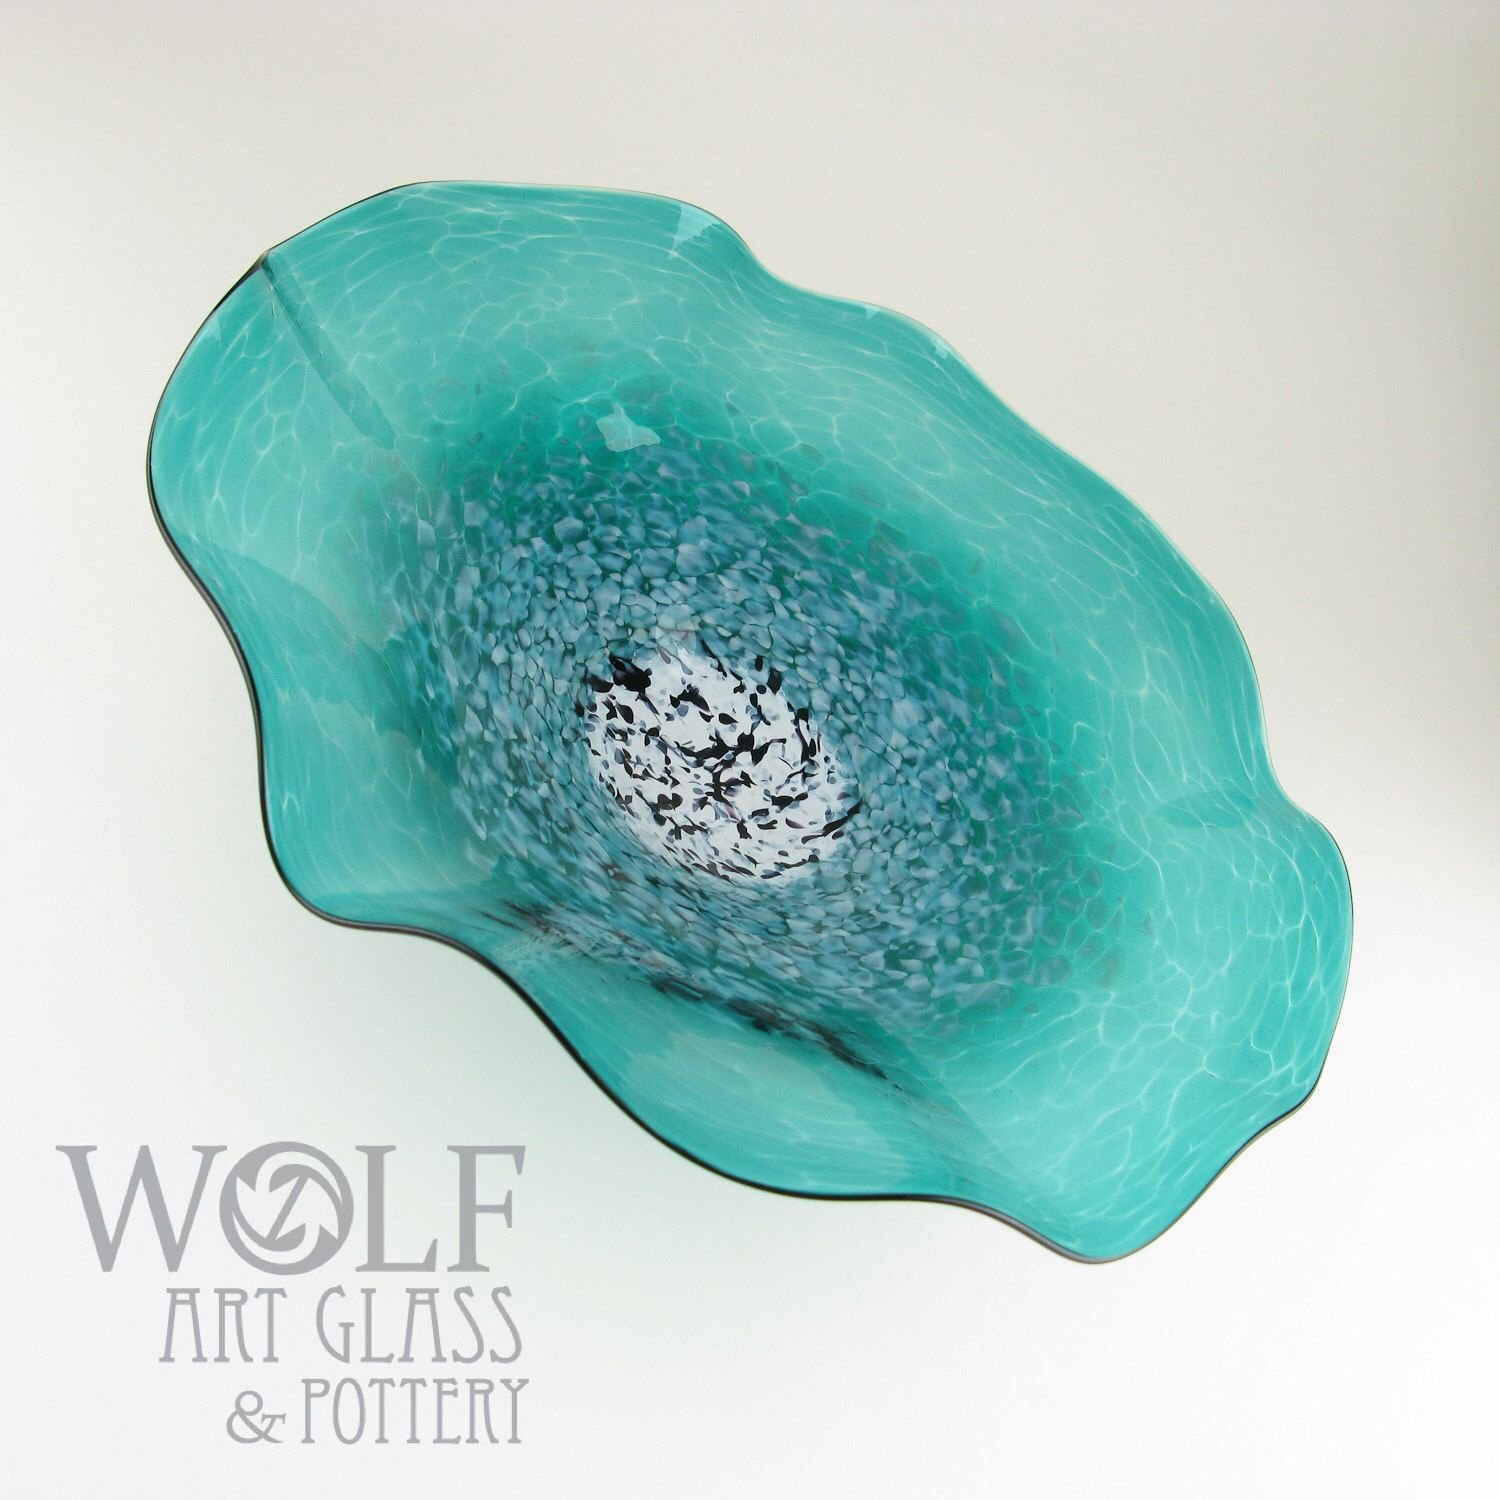 Made to order blown glass wall art poppy flower teal turquoise glass